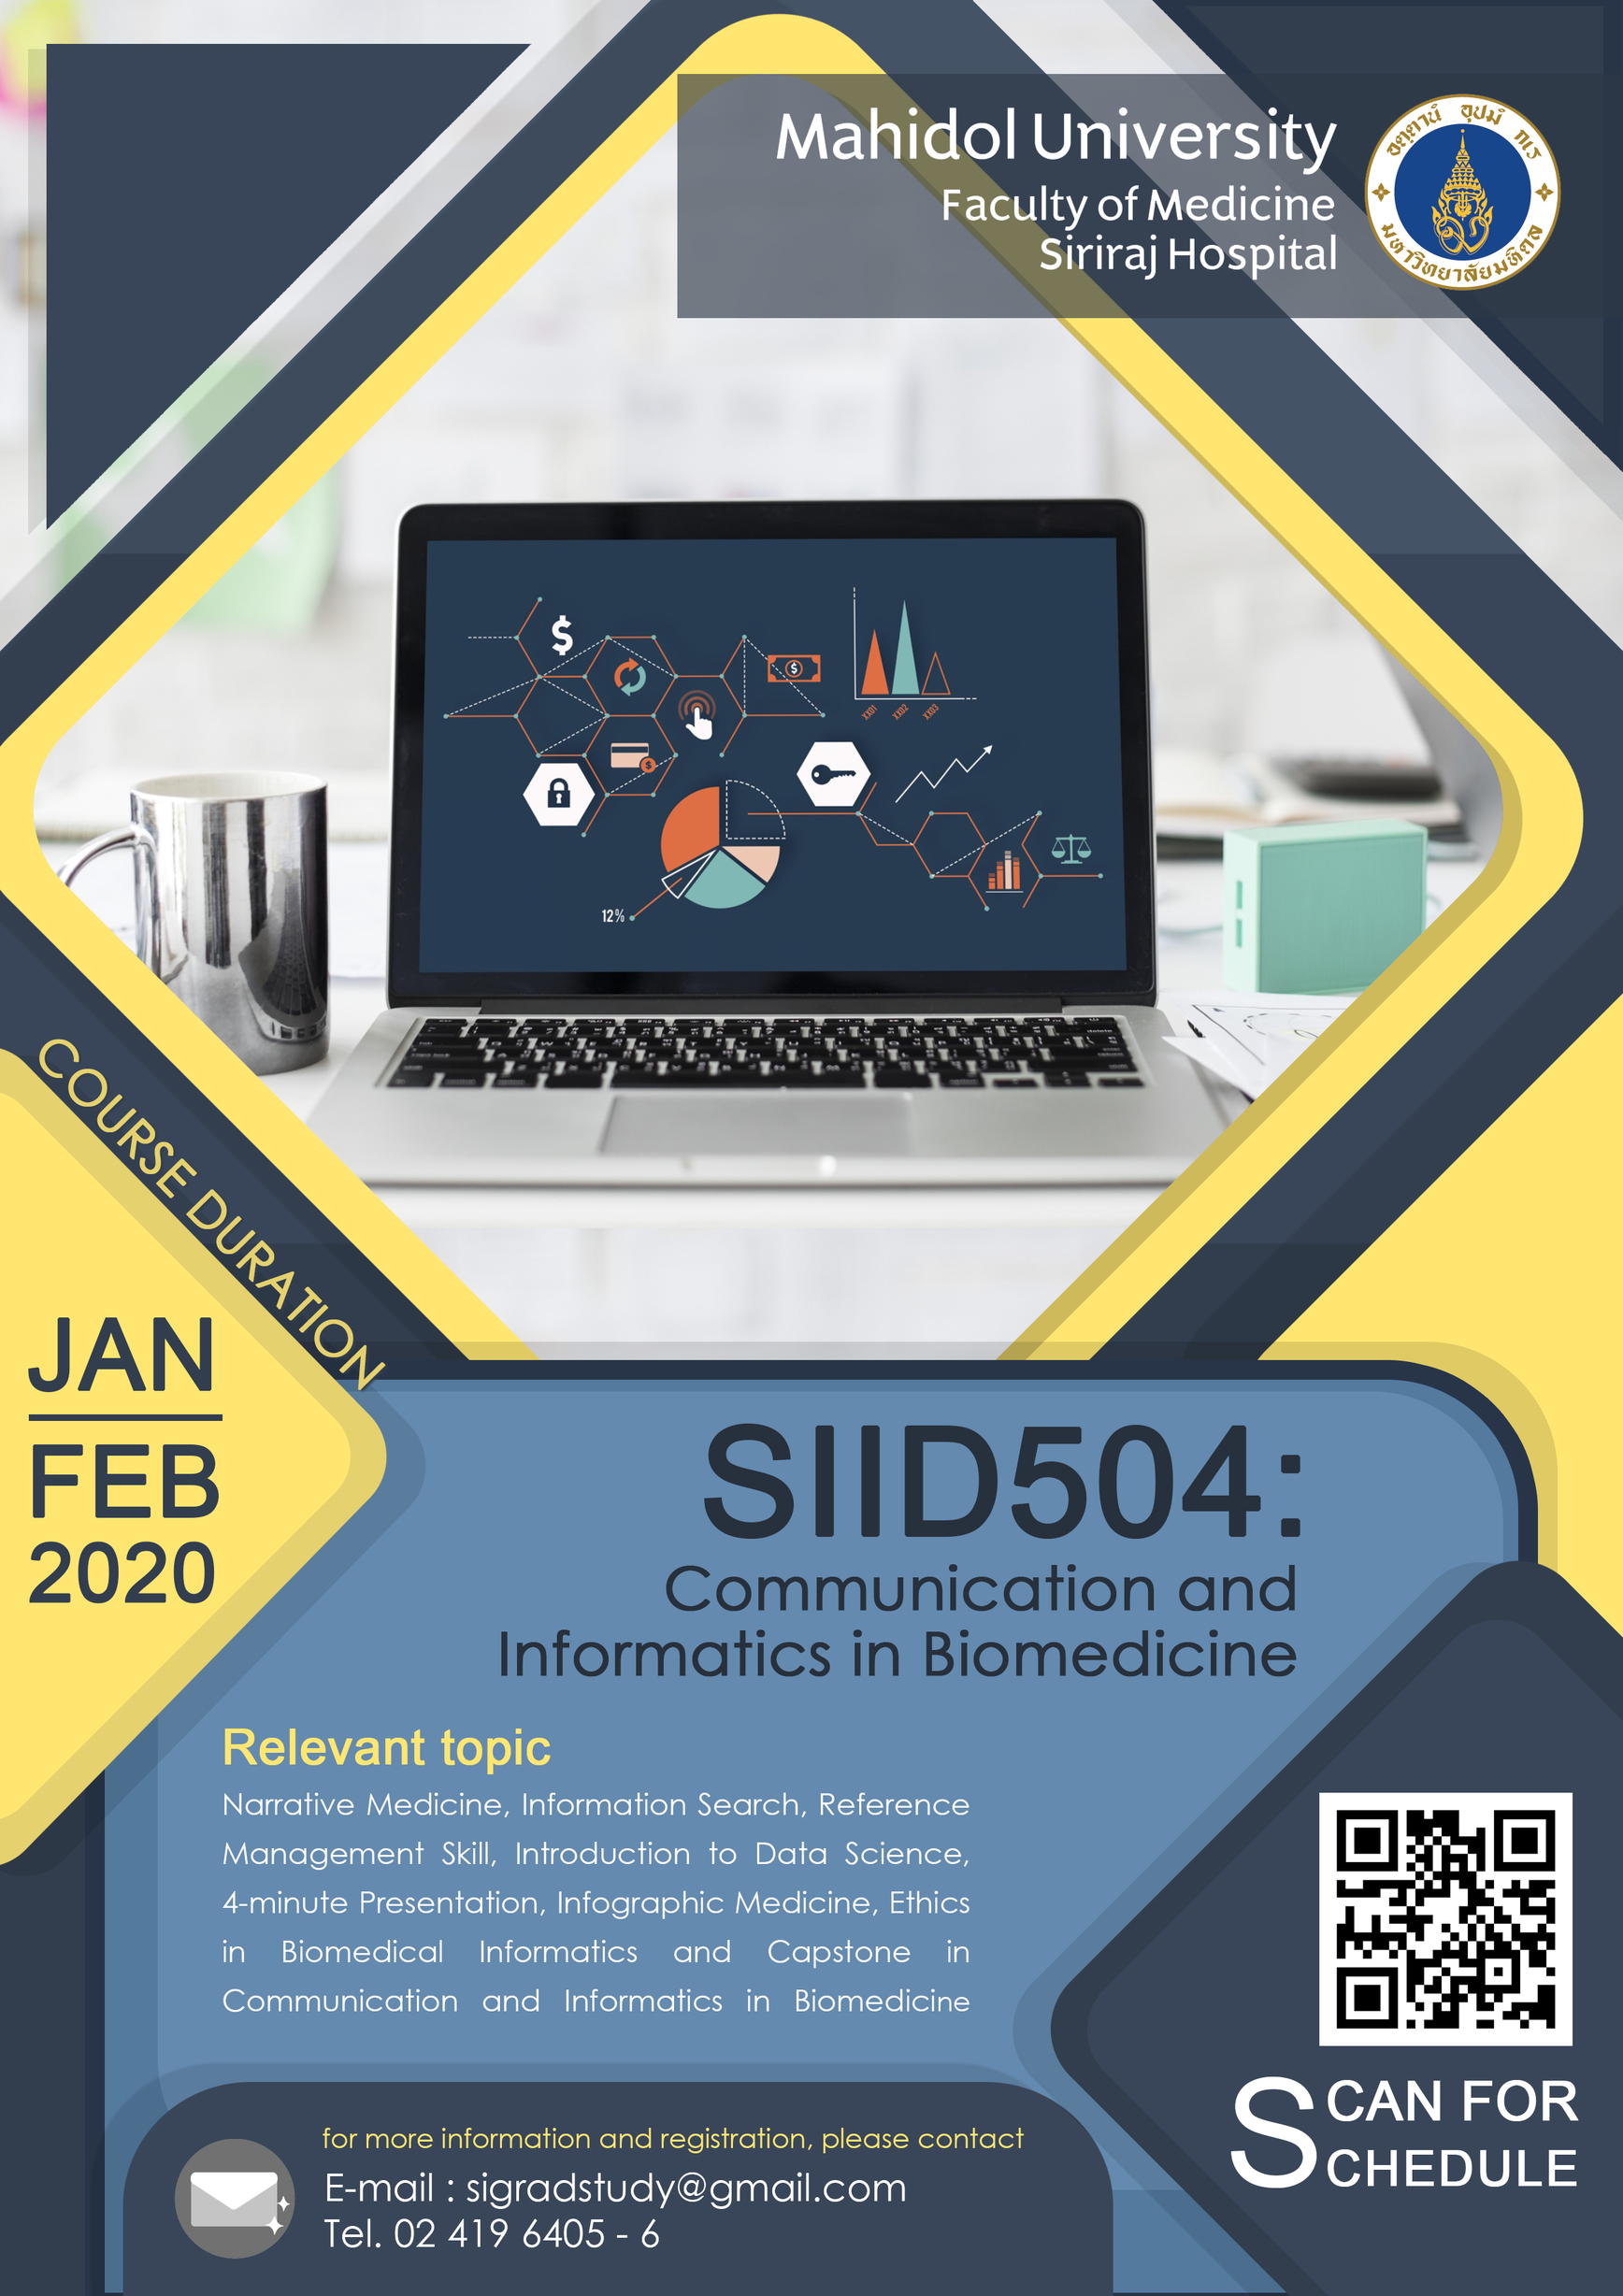 SIID504 Communication and Informatics in Biomedicine